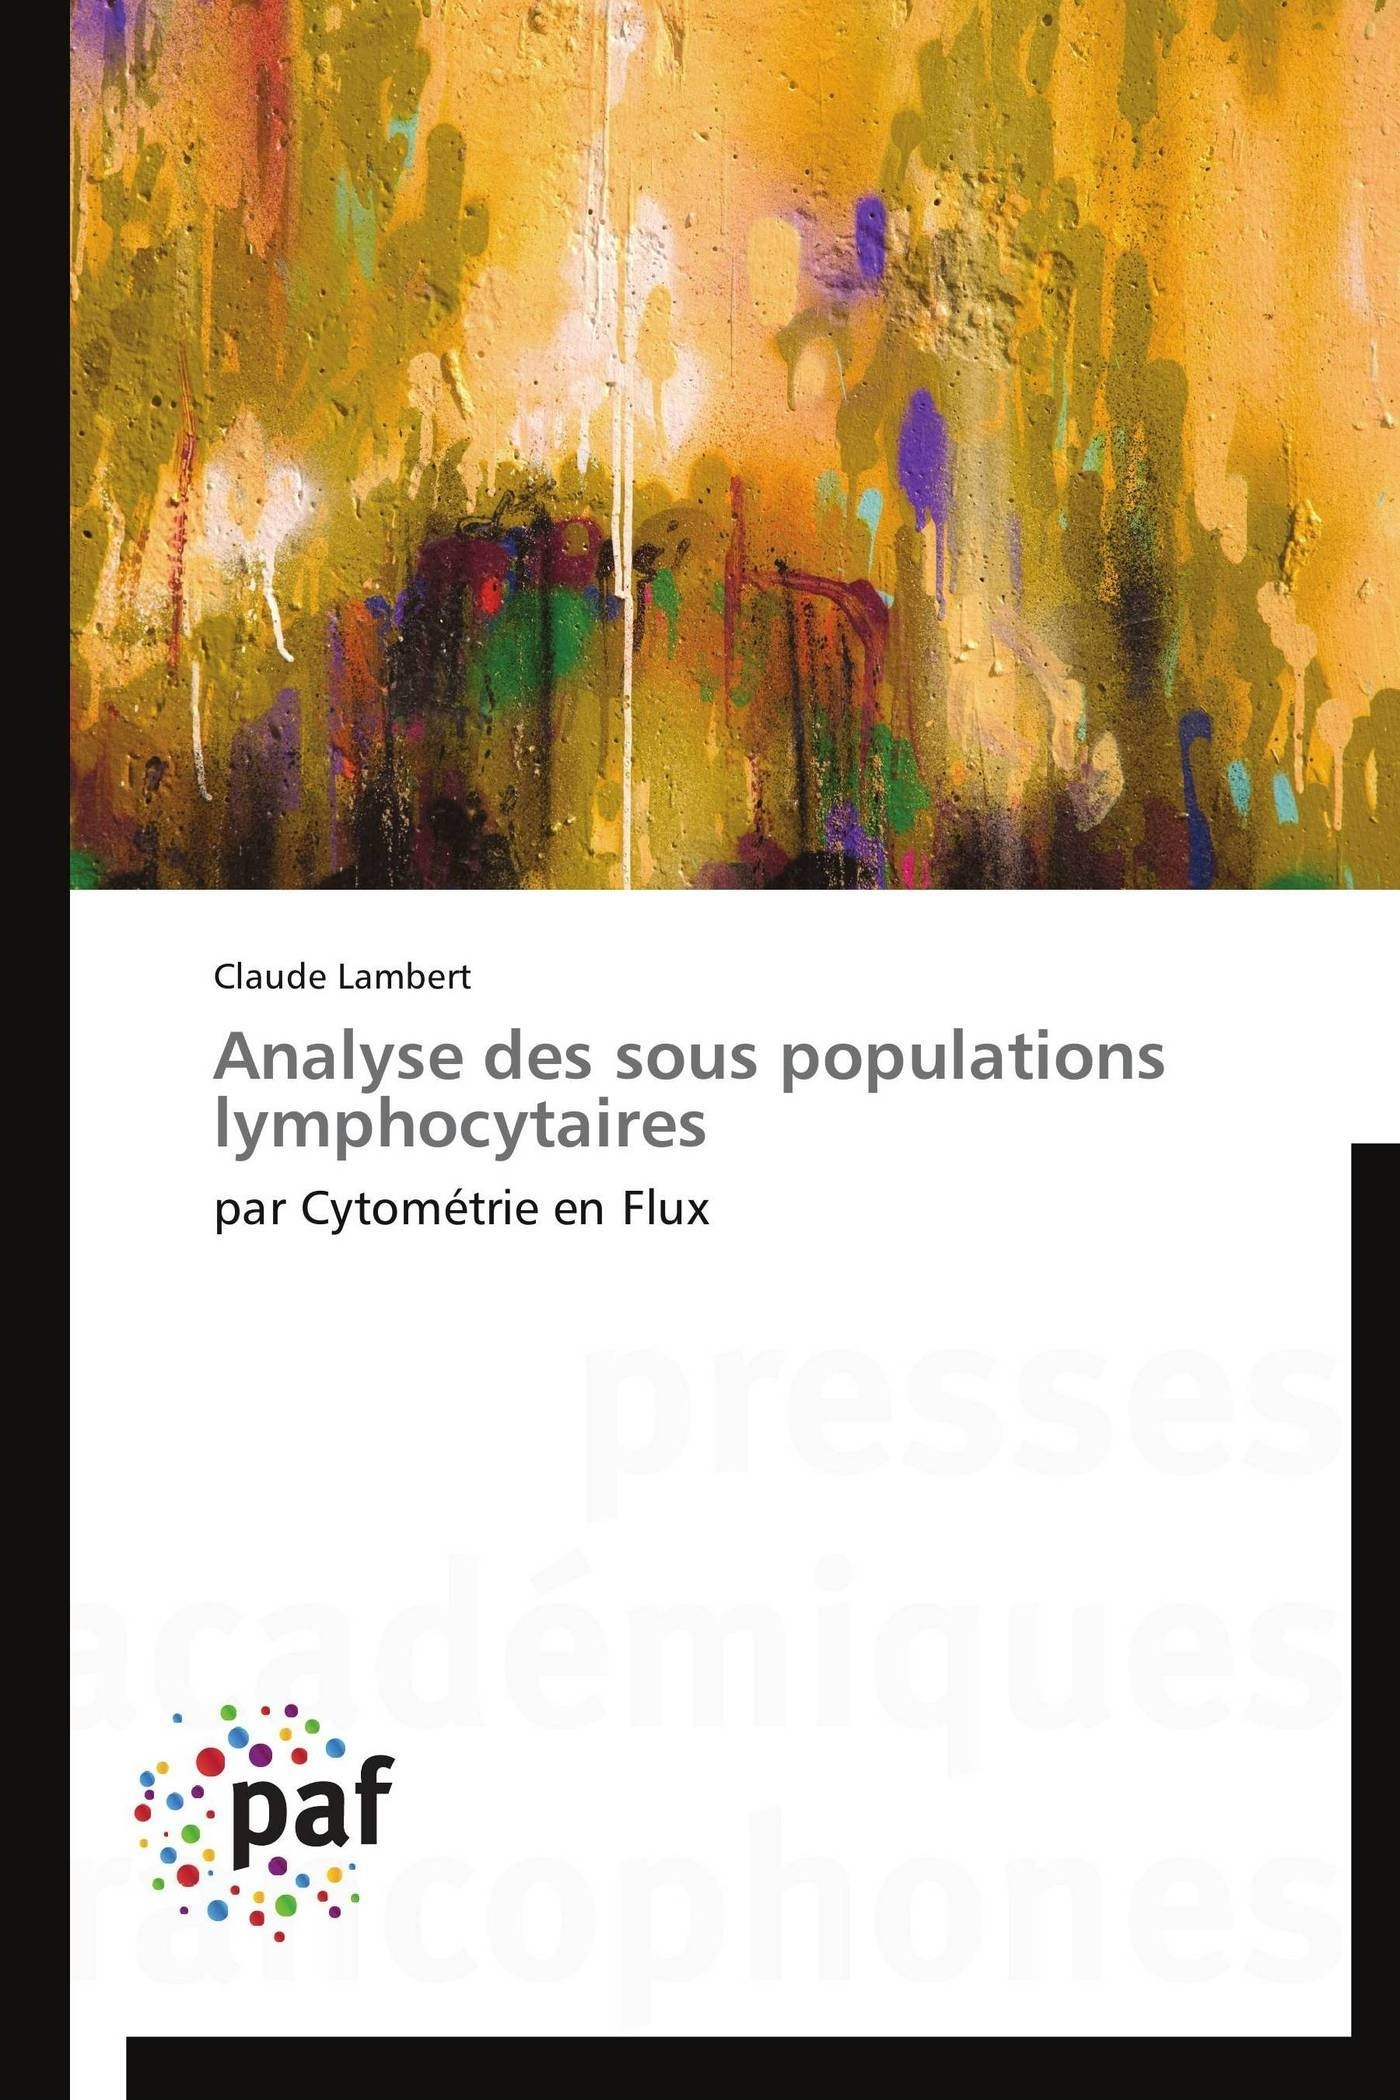 ANALYSE DES SOUS POPULATIONS LYMPHOCYTAIRES